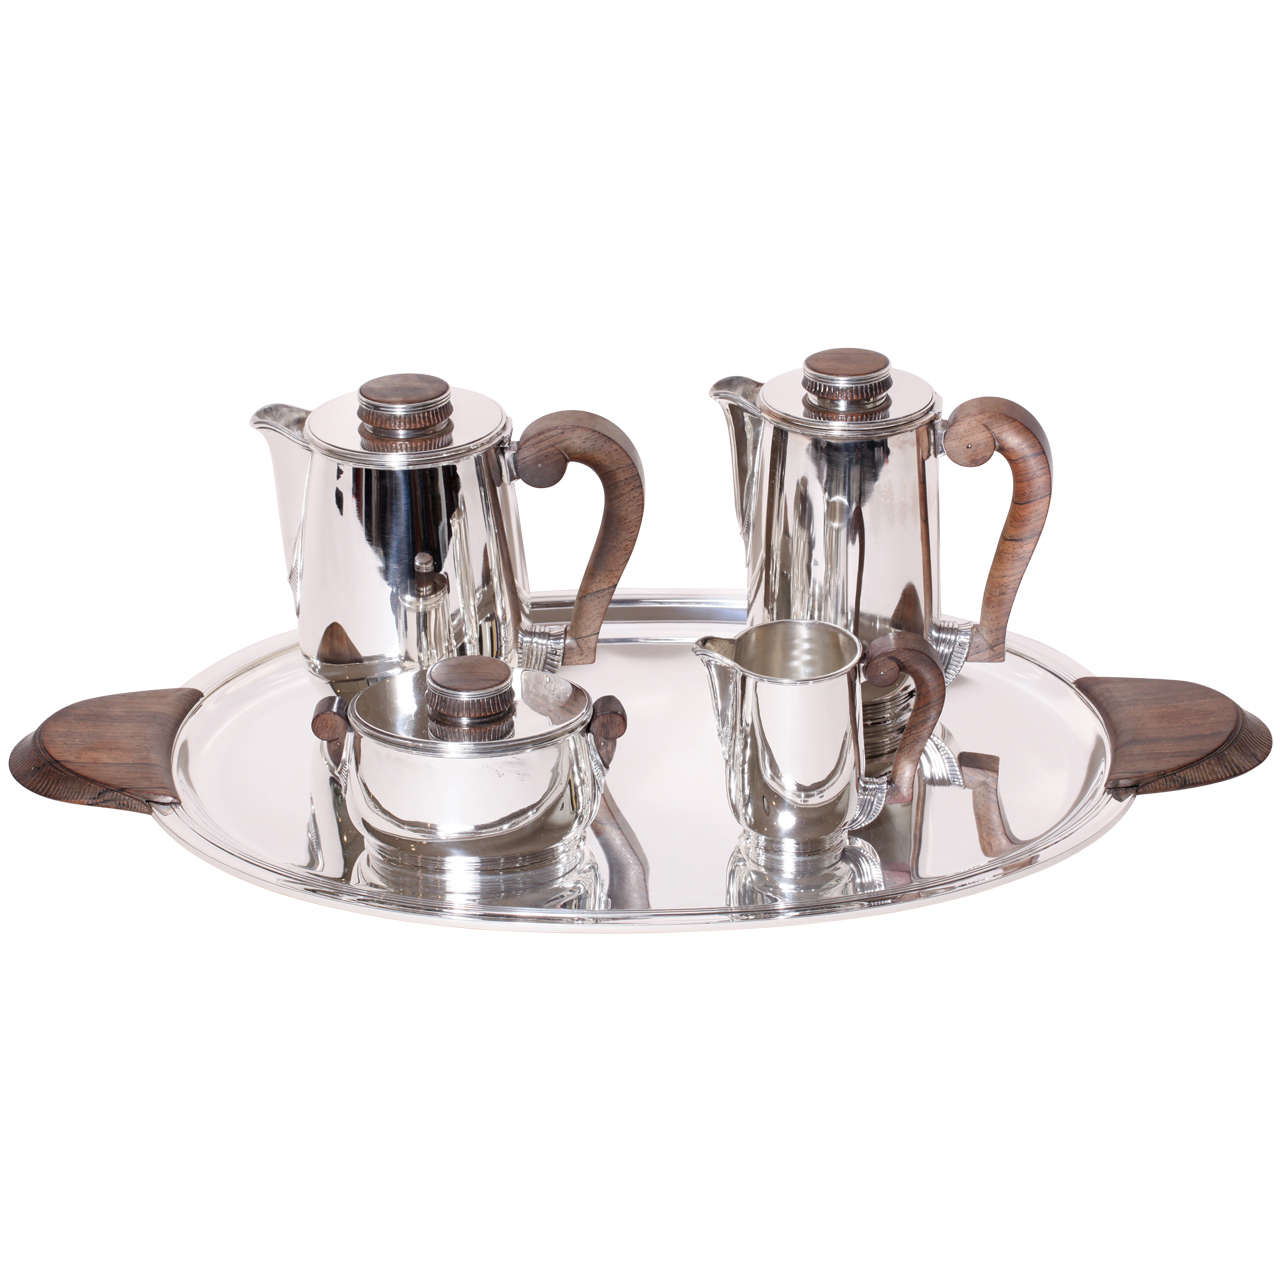 Maison Cardeilhac French Art Deco Sterling Silver Tea And Coffee Service On Tray For